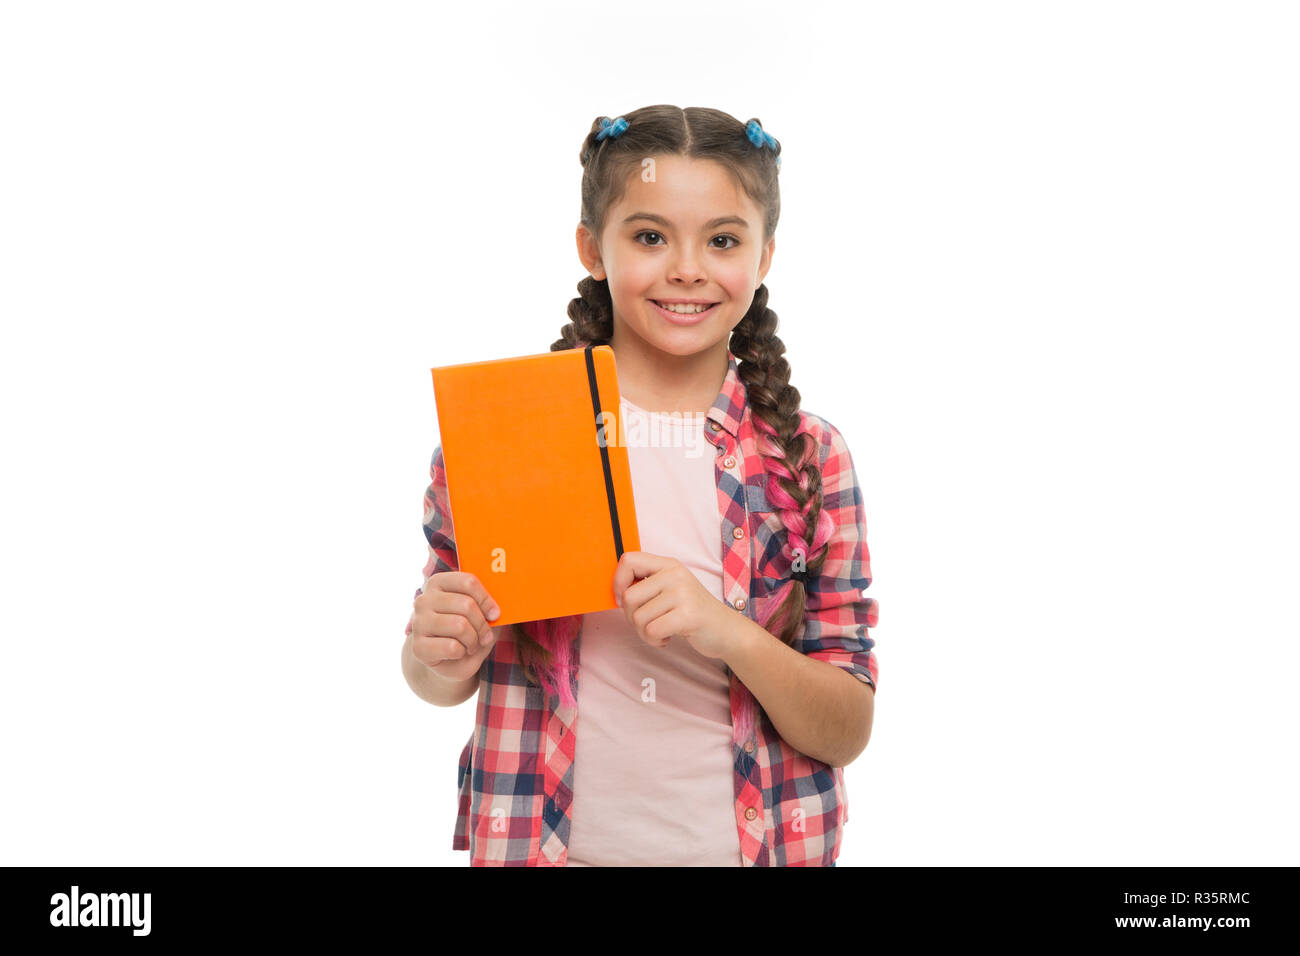 Child cute girl hold notepad or diary isolated on white background. Diary writing for children. Childhood memories. Diary for girls concept. Note secrets down in your cute girly diary journal. - Stock Image